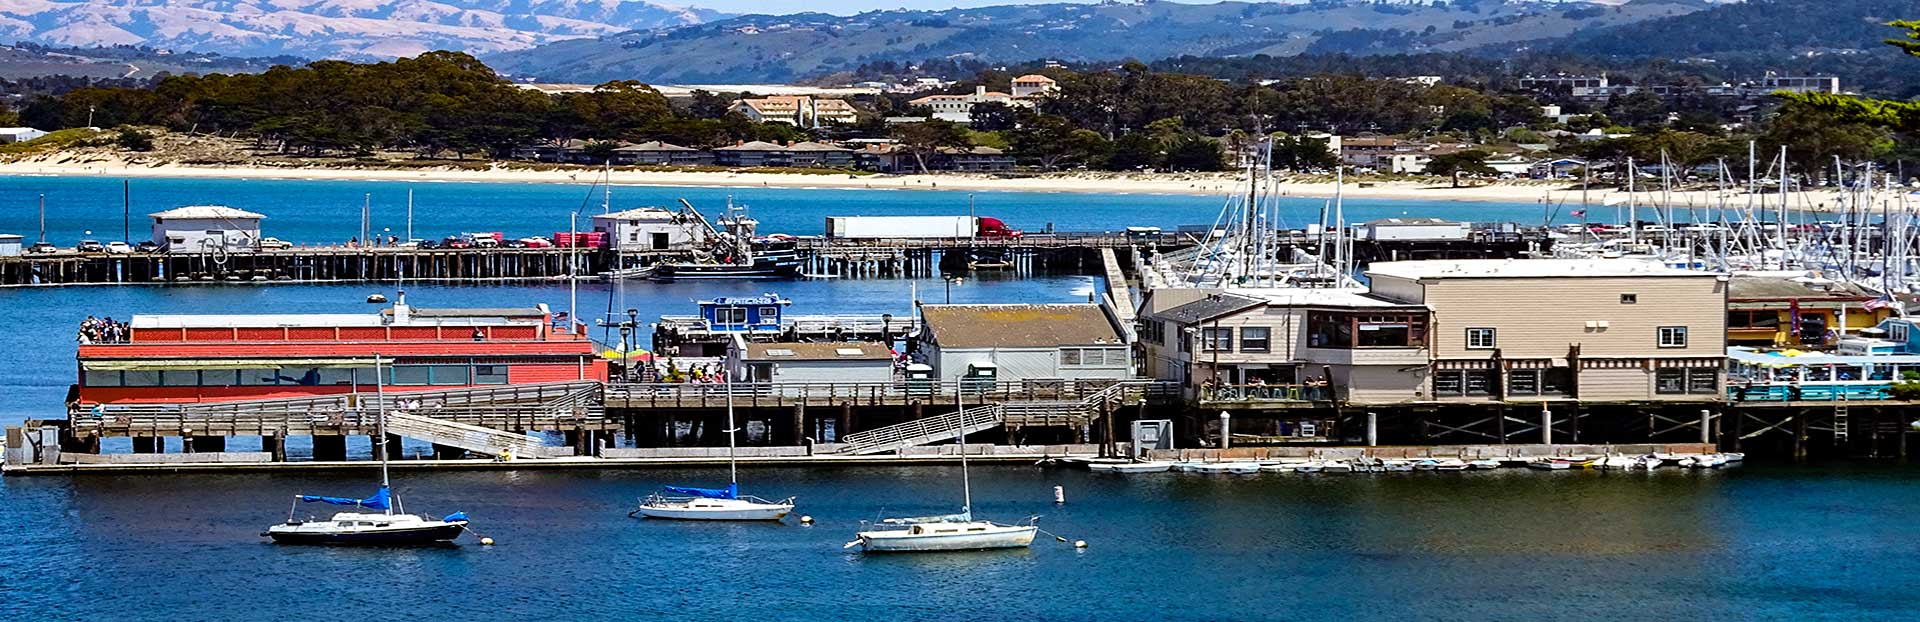 Monterey Peninsula audio tour: Monterey Bay Driving Tour: From Del Monte Beach to Cannery Row and the Aquarium